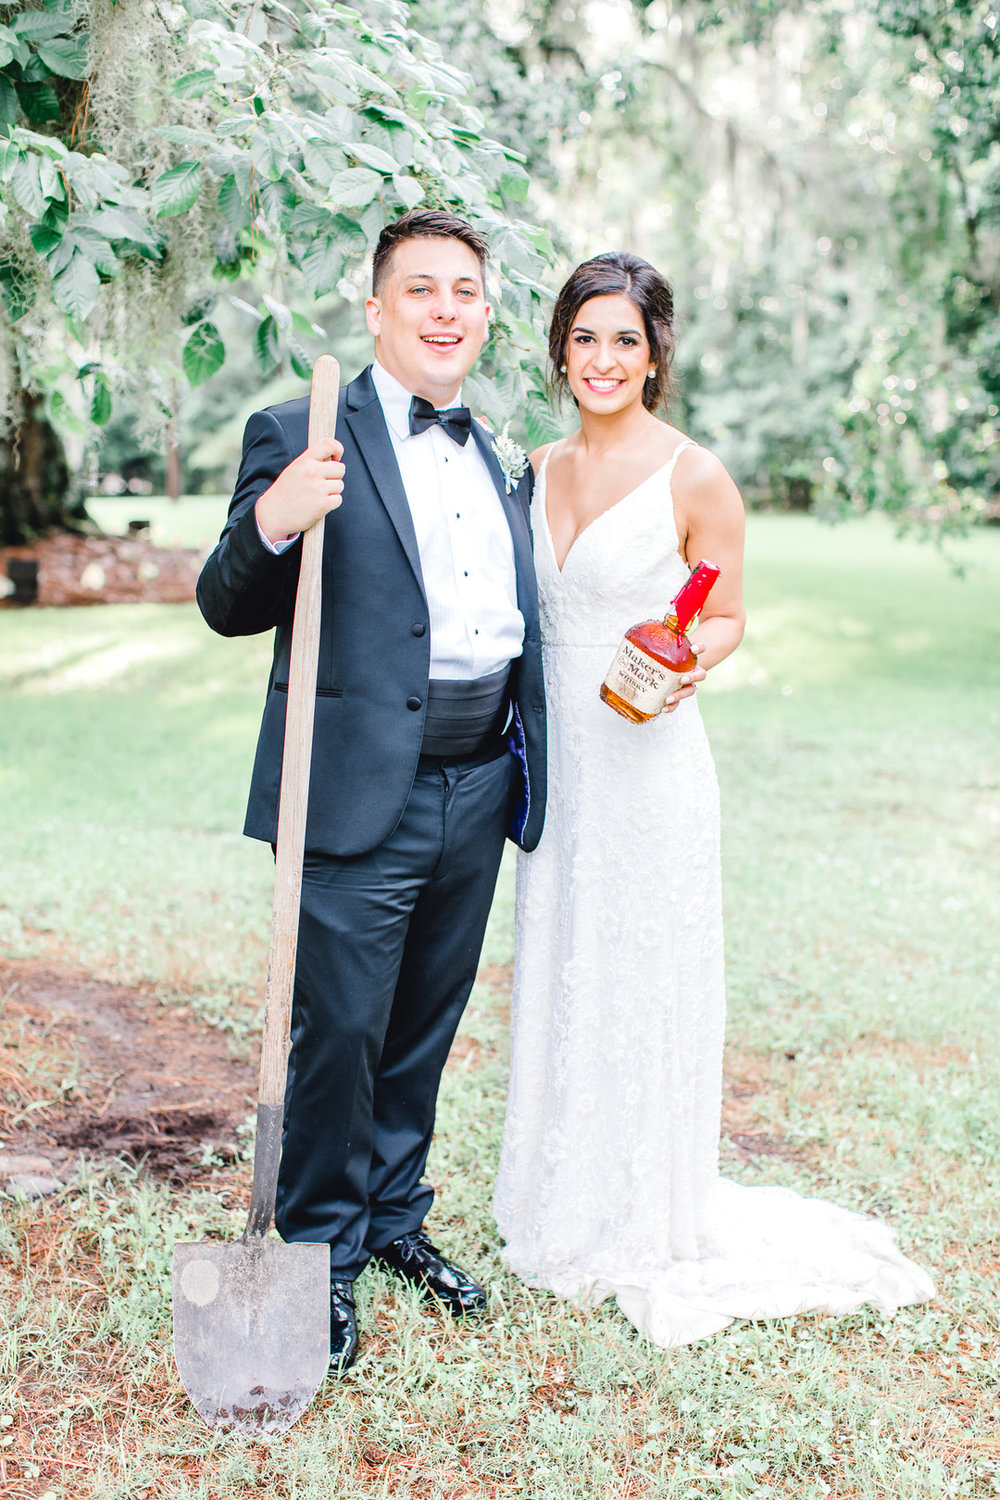 Southern Traditions: Dusty Blue Wedding Styled Shoot at Magnolia Plantation | Palmetto State Weddings